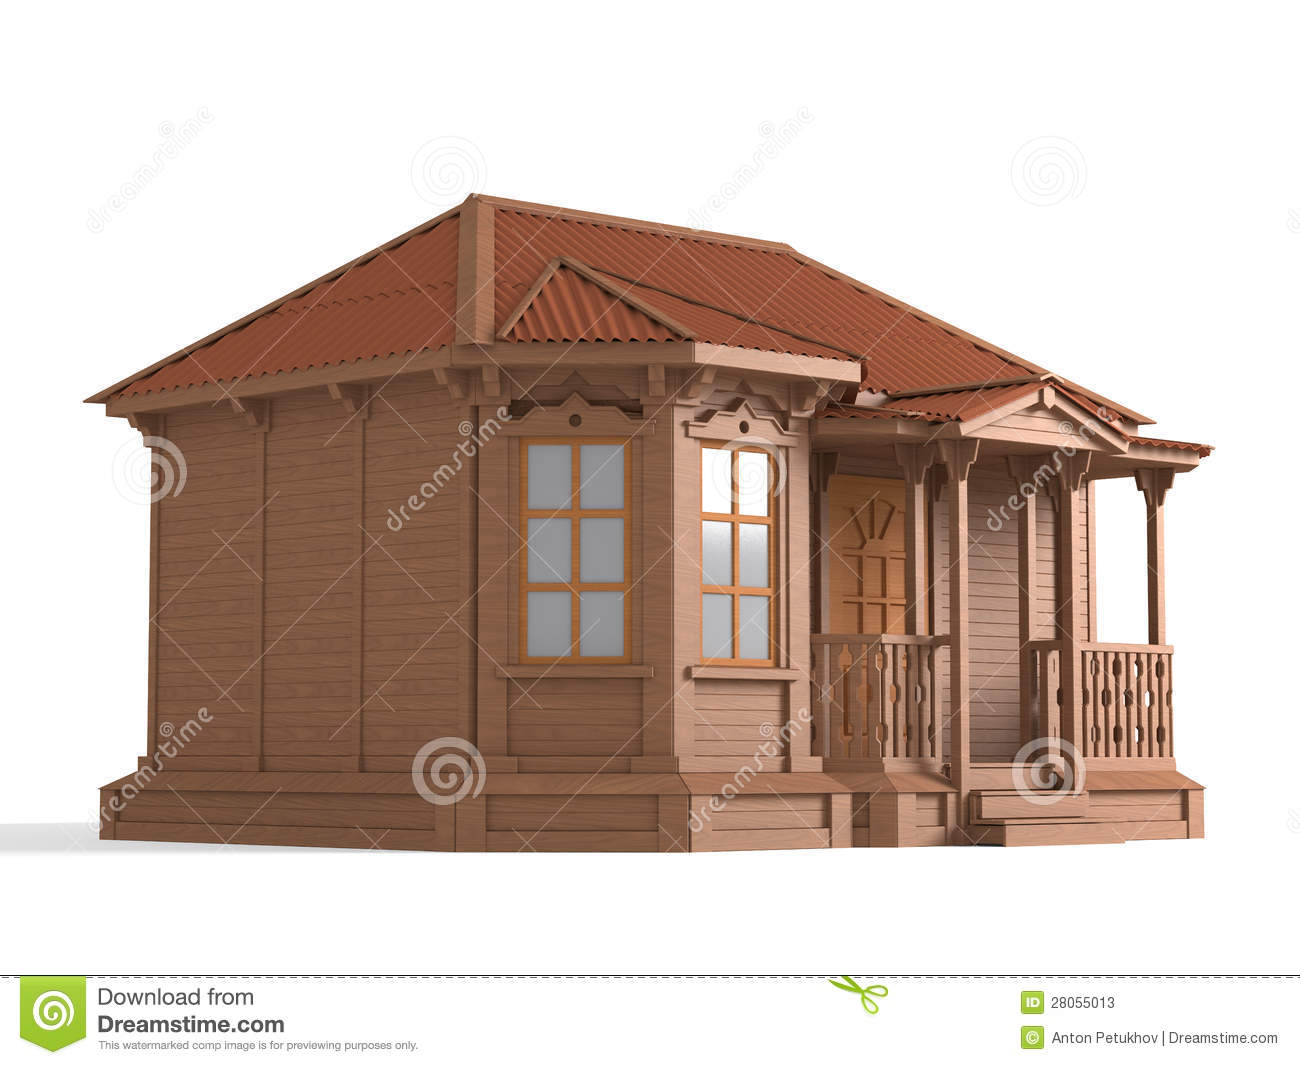 3d model of wooden house stock illustration image of windows 28055013 - Small wood homes ...